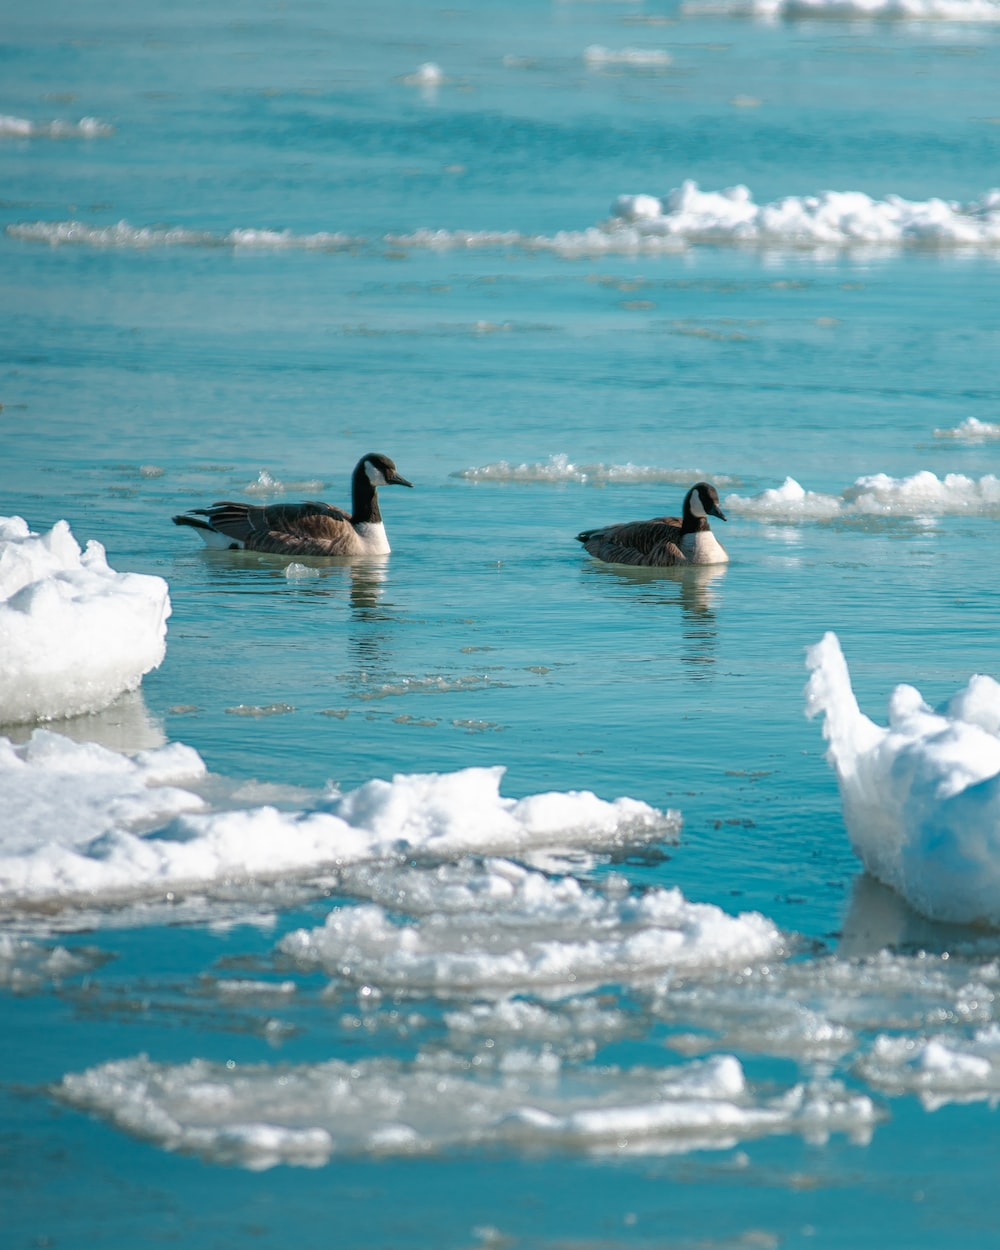 white and black duck on white snow during daytime